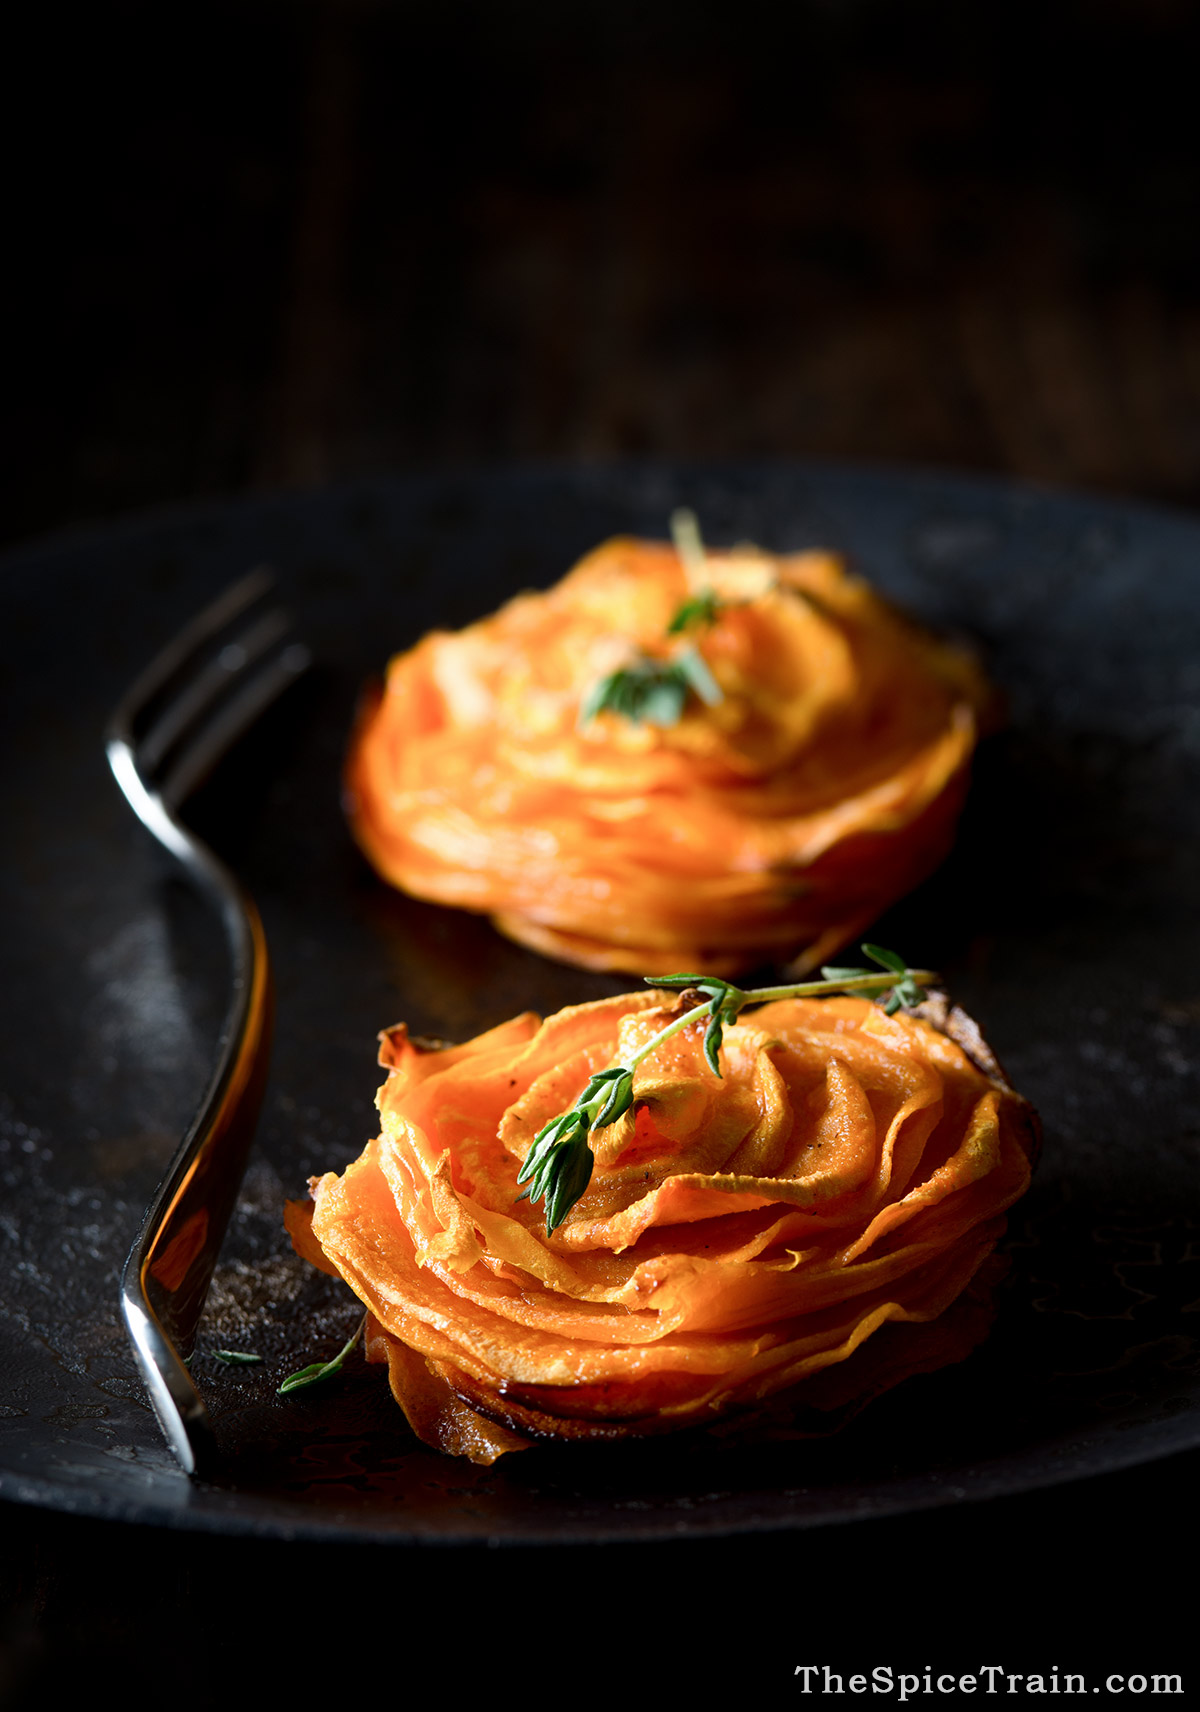 Two sweet potato stacks on a black plate.